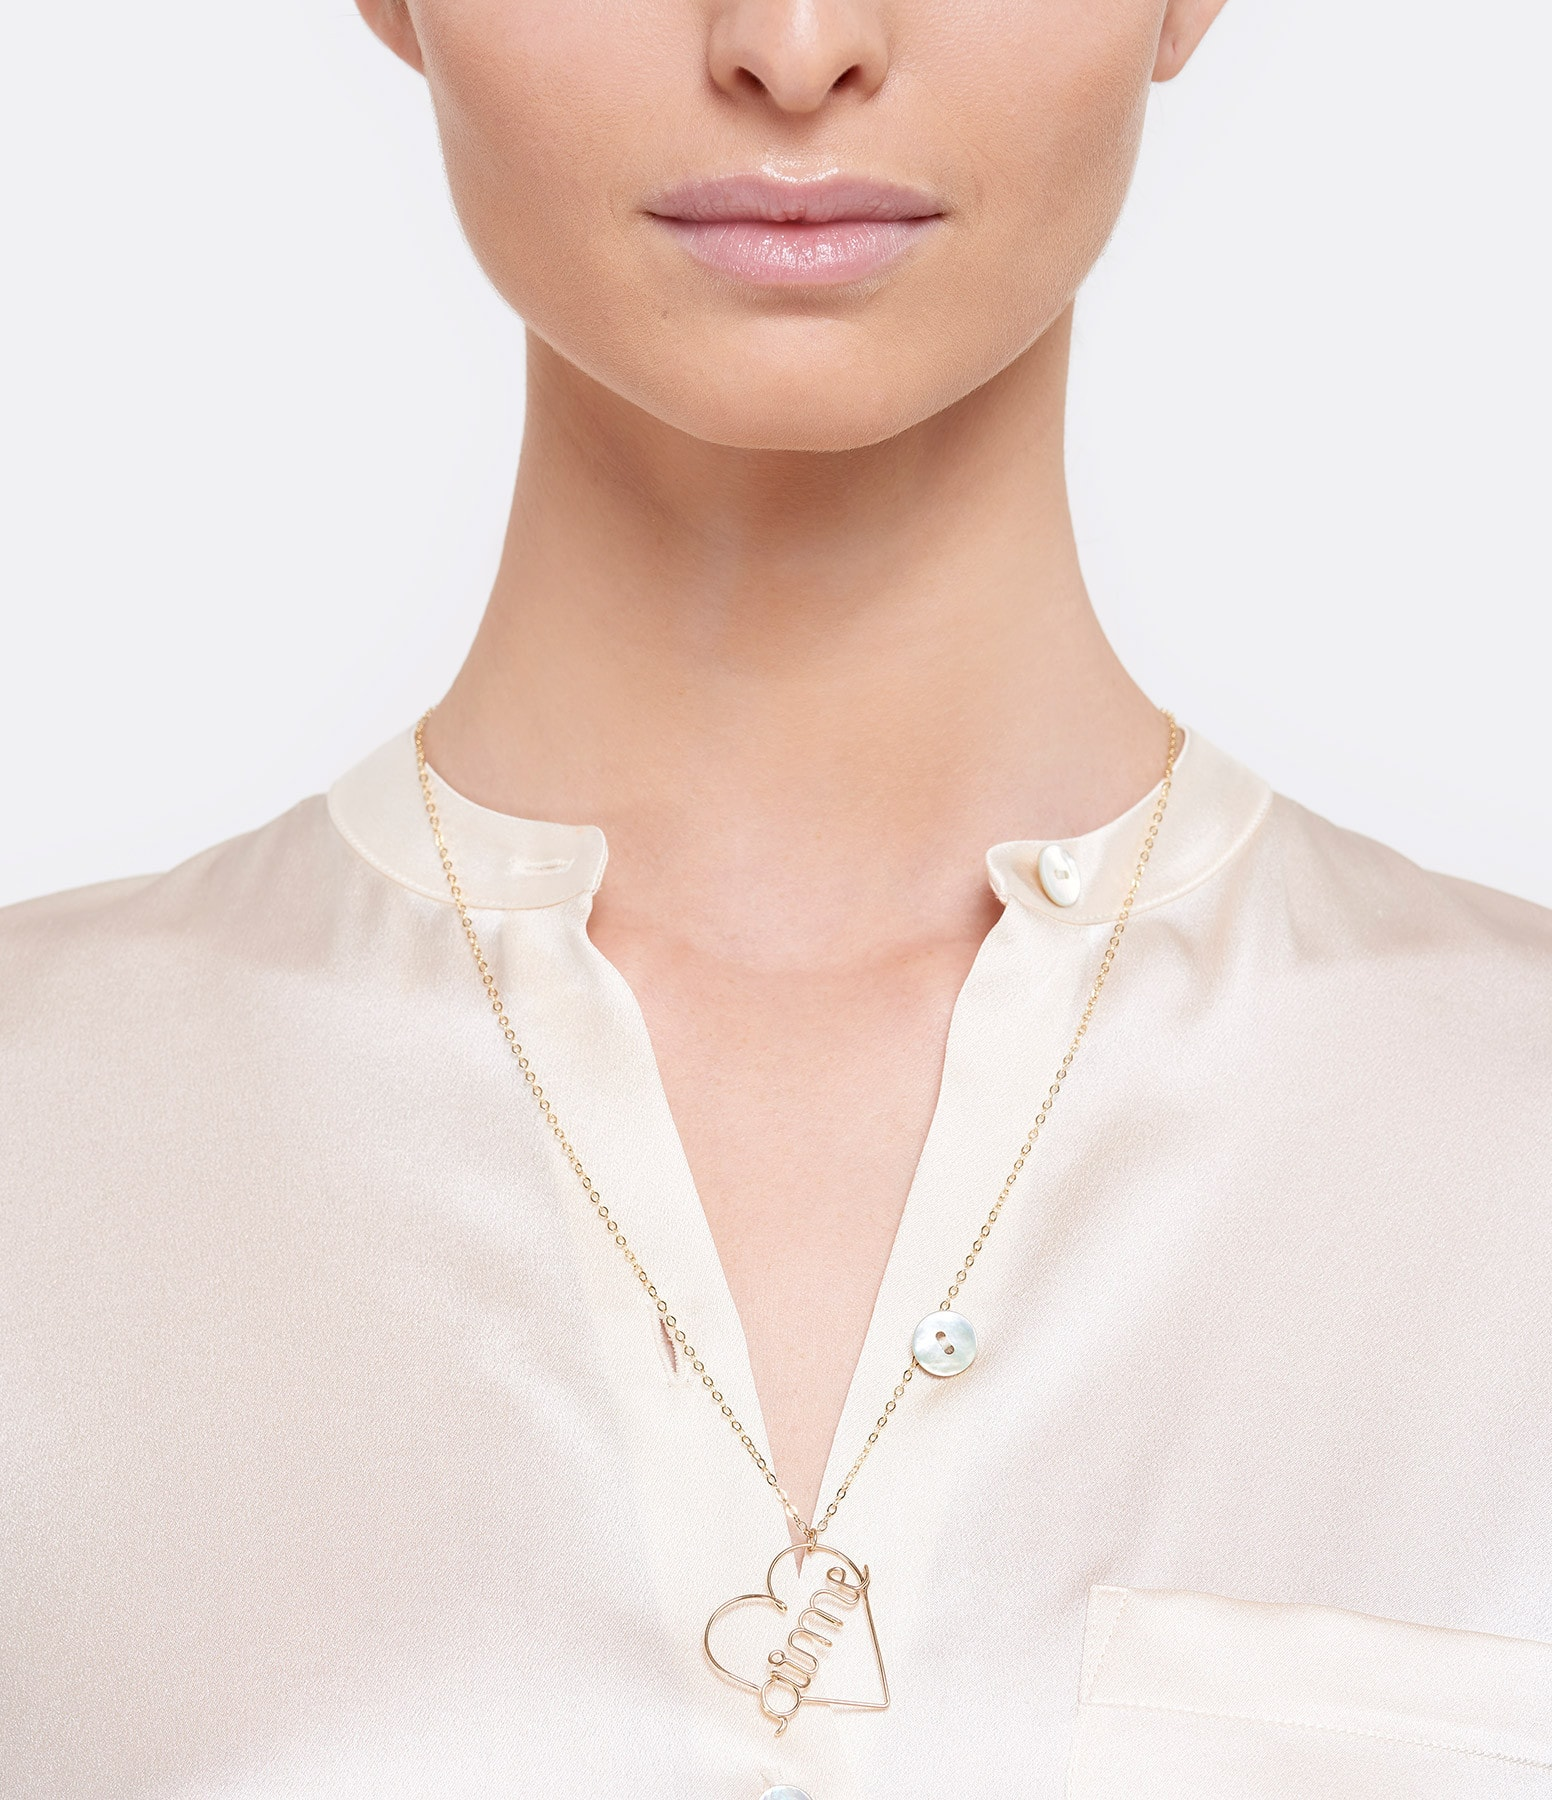 ATELIER PAULIN - Collier Aime PM Gold Filled 14K, Atelier Paulin x Inside Closet